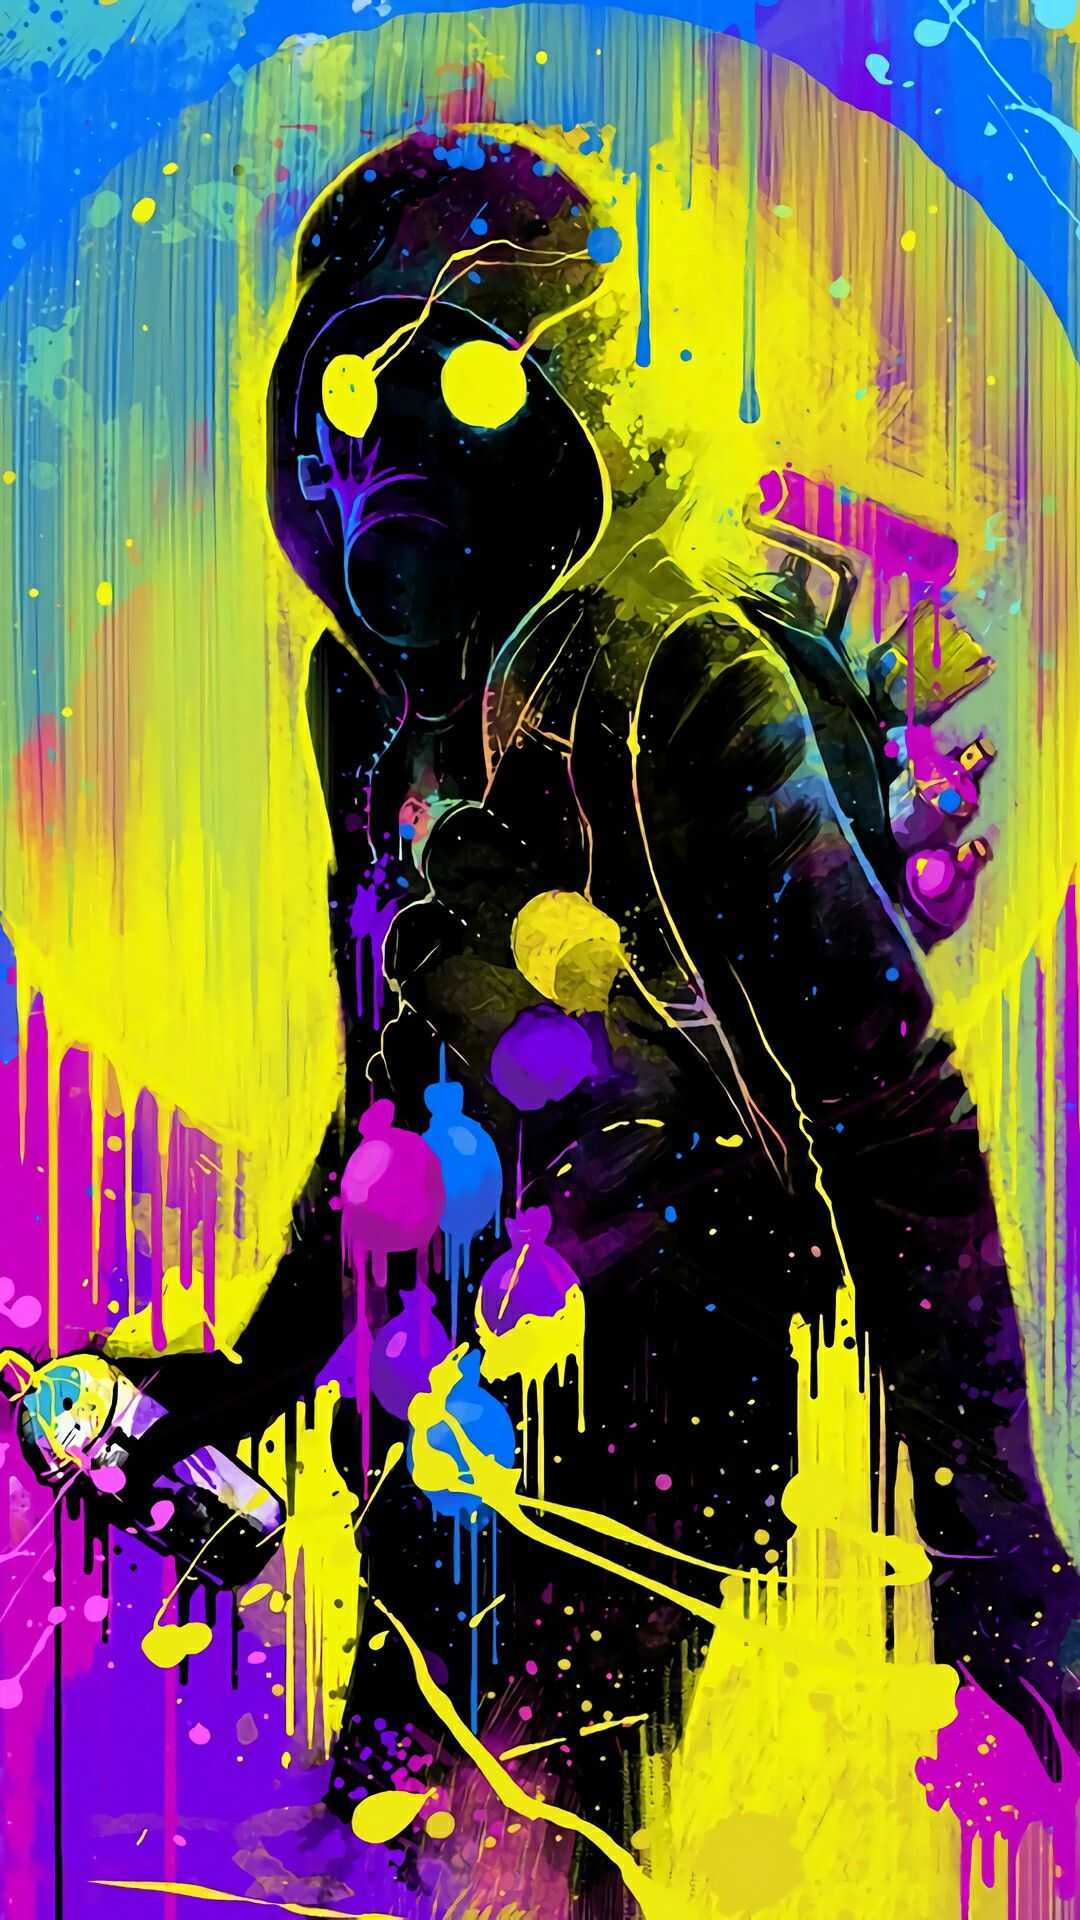 Pin by 昱辰 劉 on Sprays in 2019 | Graffiti wallpaper, Art, Gas mask art